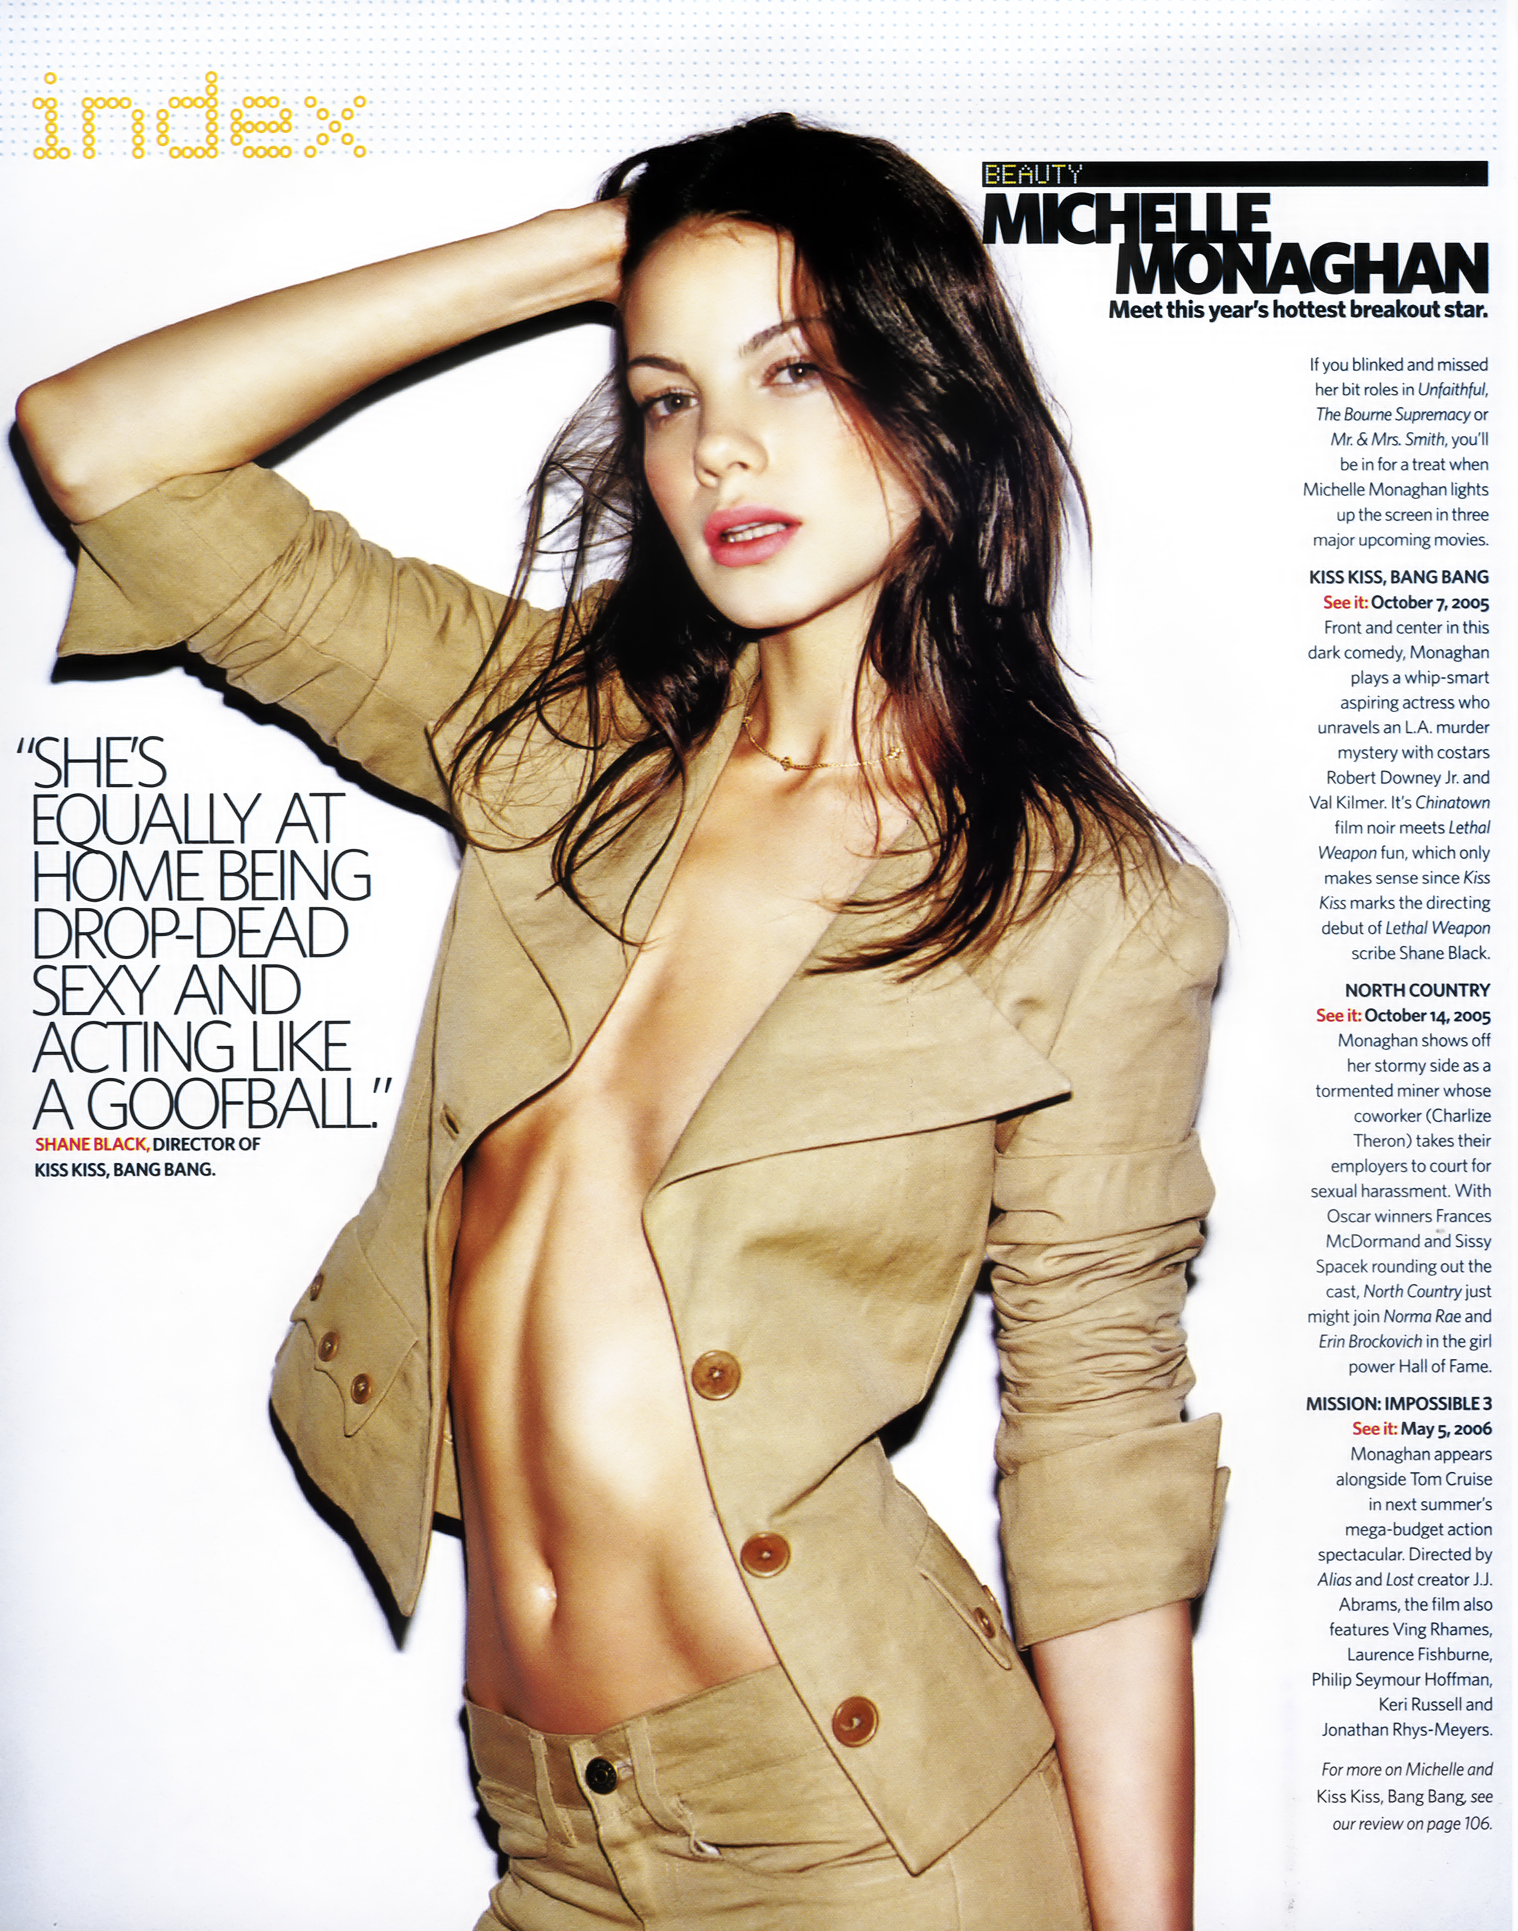 Michelle Monaghan Kiss Kiss Bang Bang Photo 17 (Мишель Монаган Фото 17